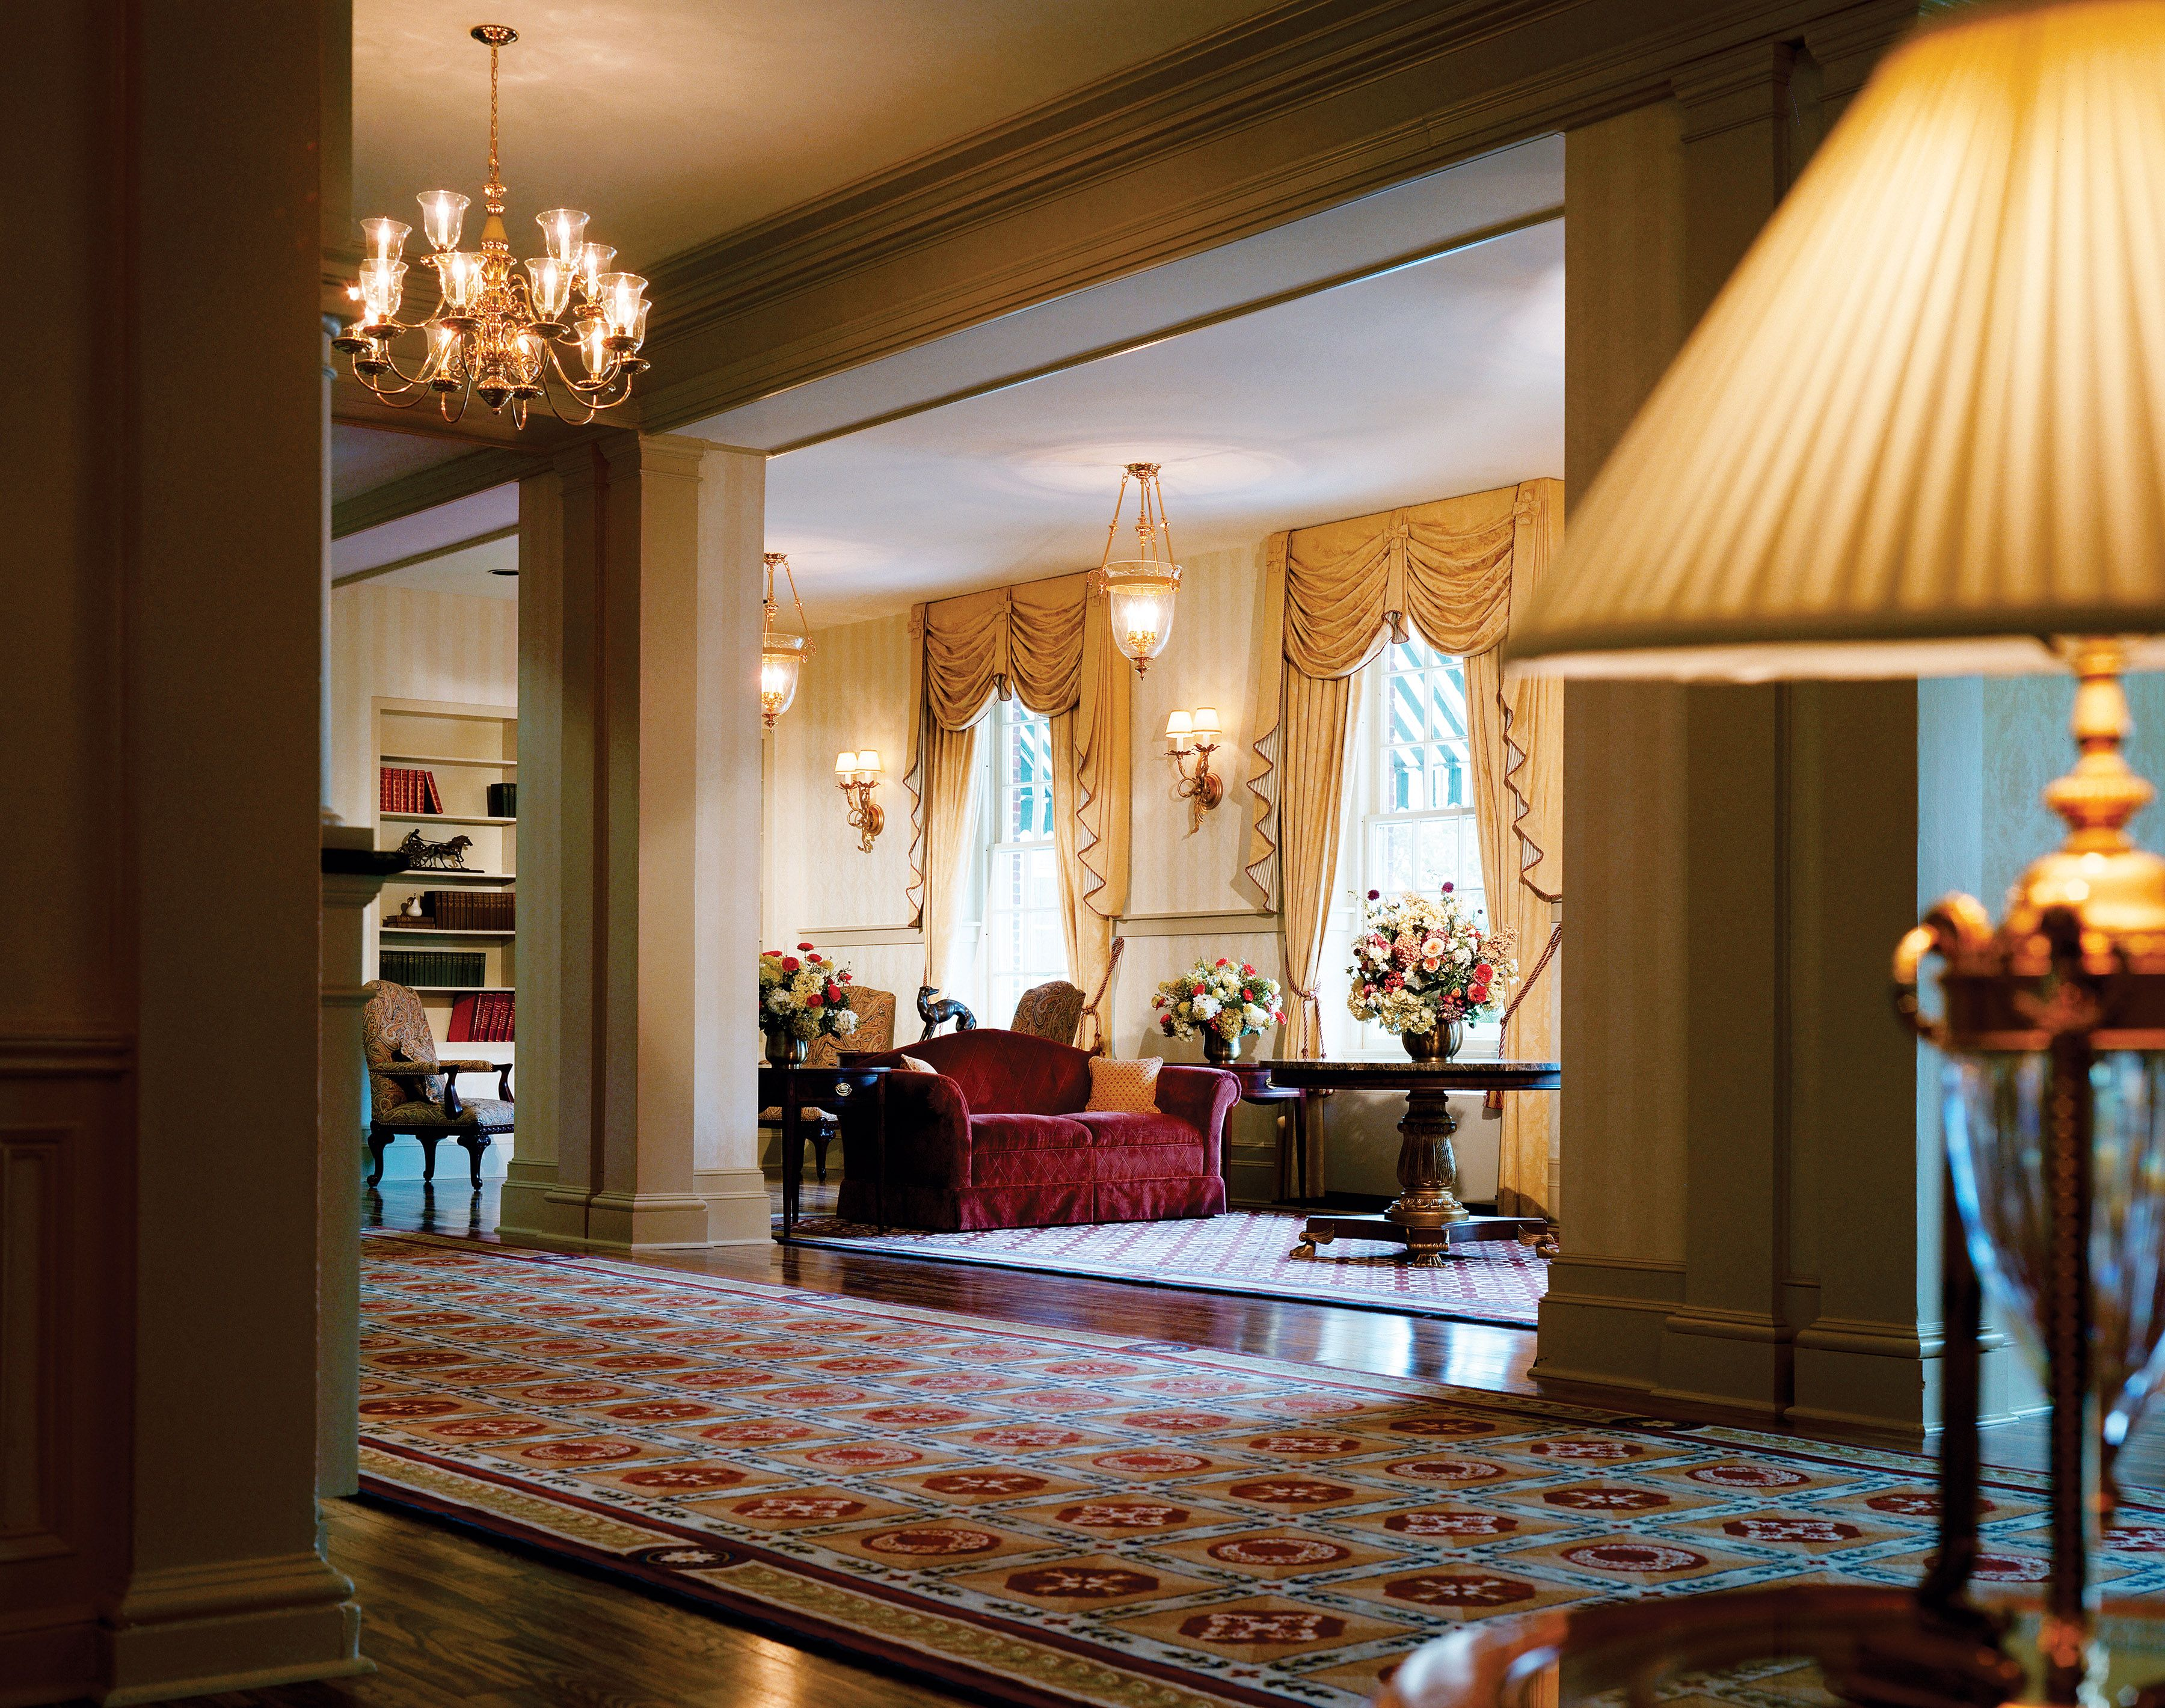 Lobby Of Hotel Viking Hotel Viking Is A Historic Hotel Located In